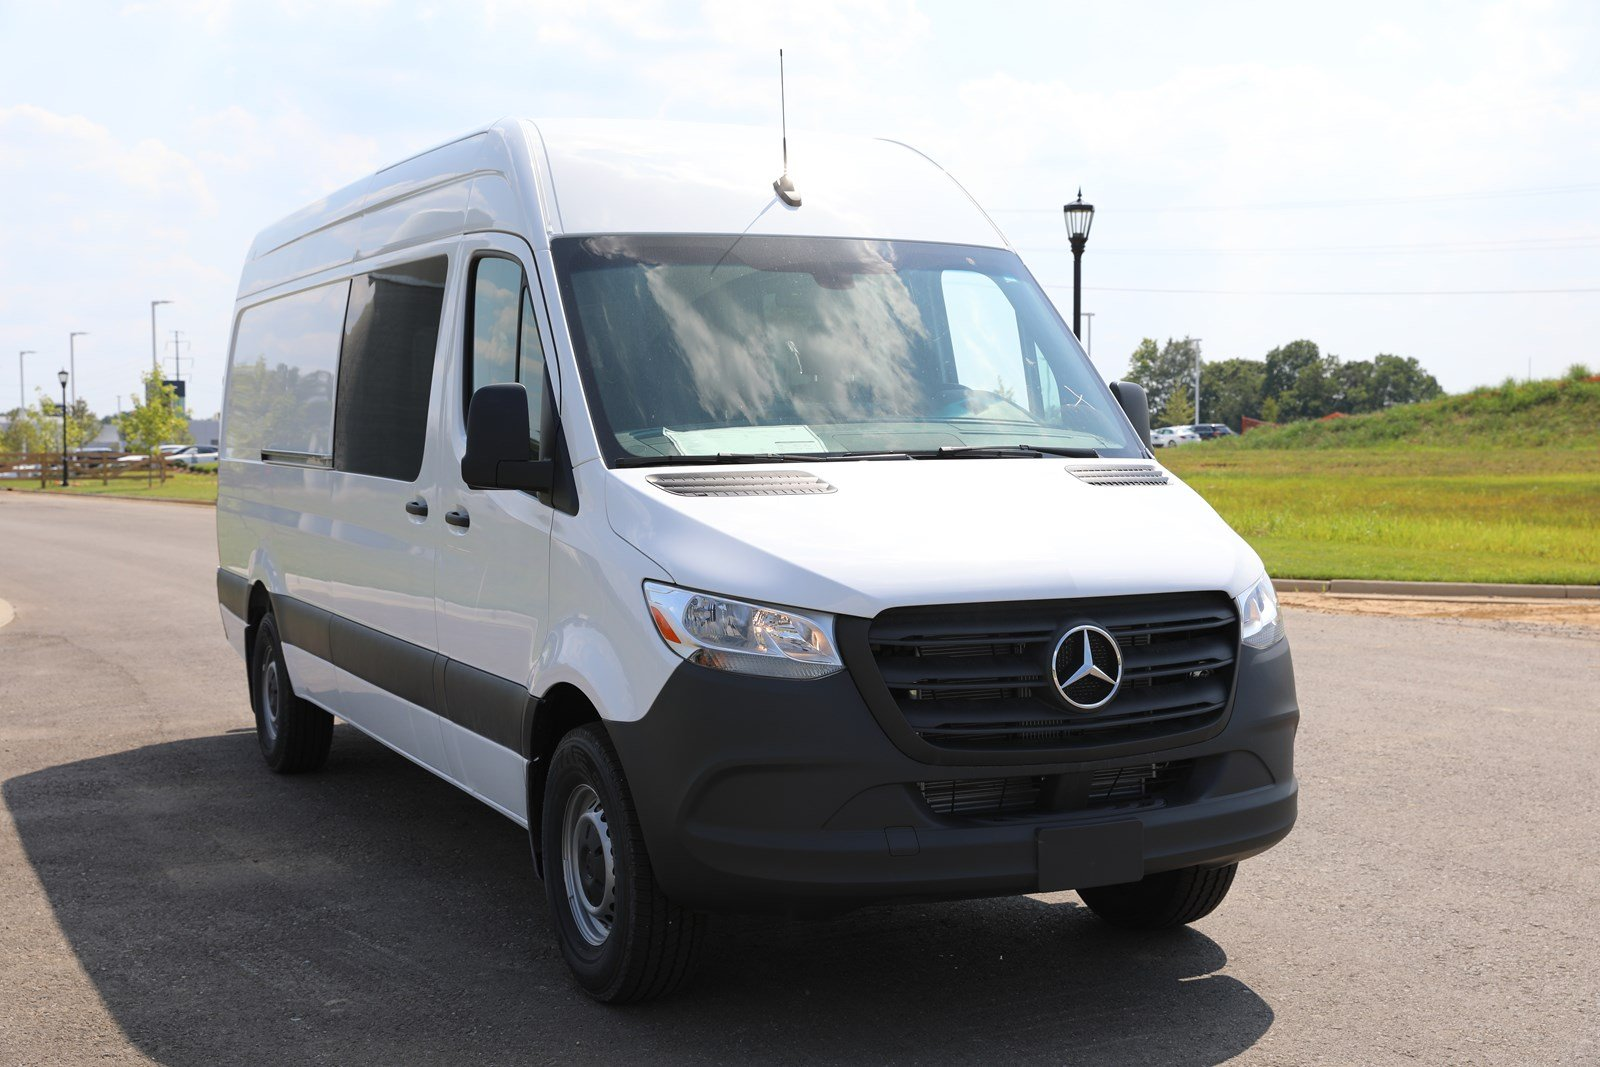 New 2019 Mercedes-Benz Sprinter Crew Van 2500 170 HR